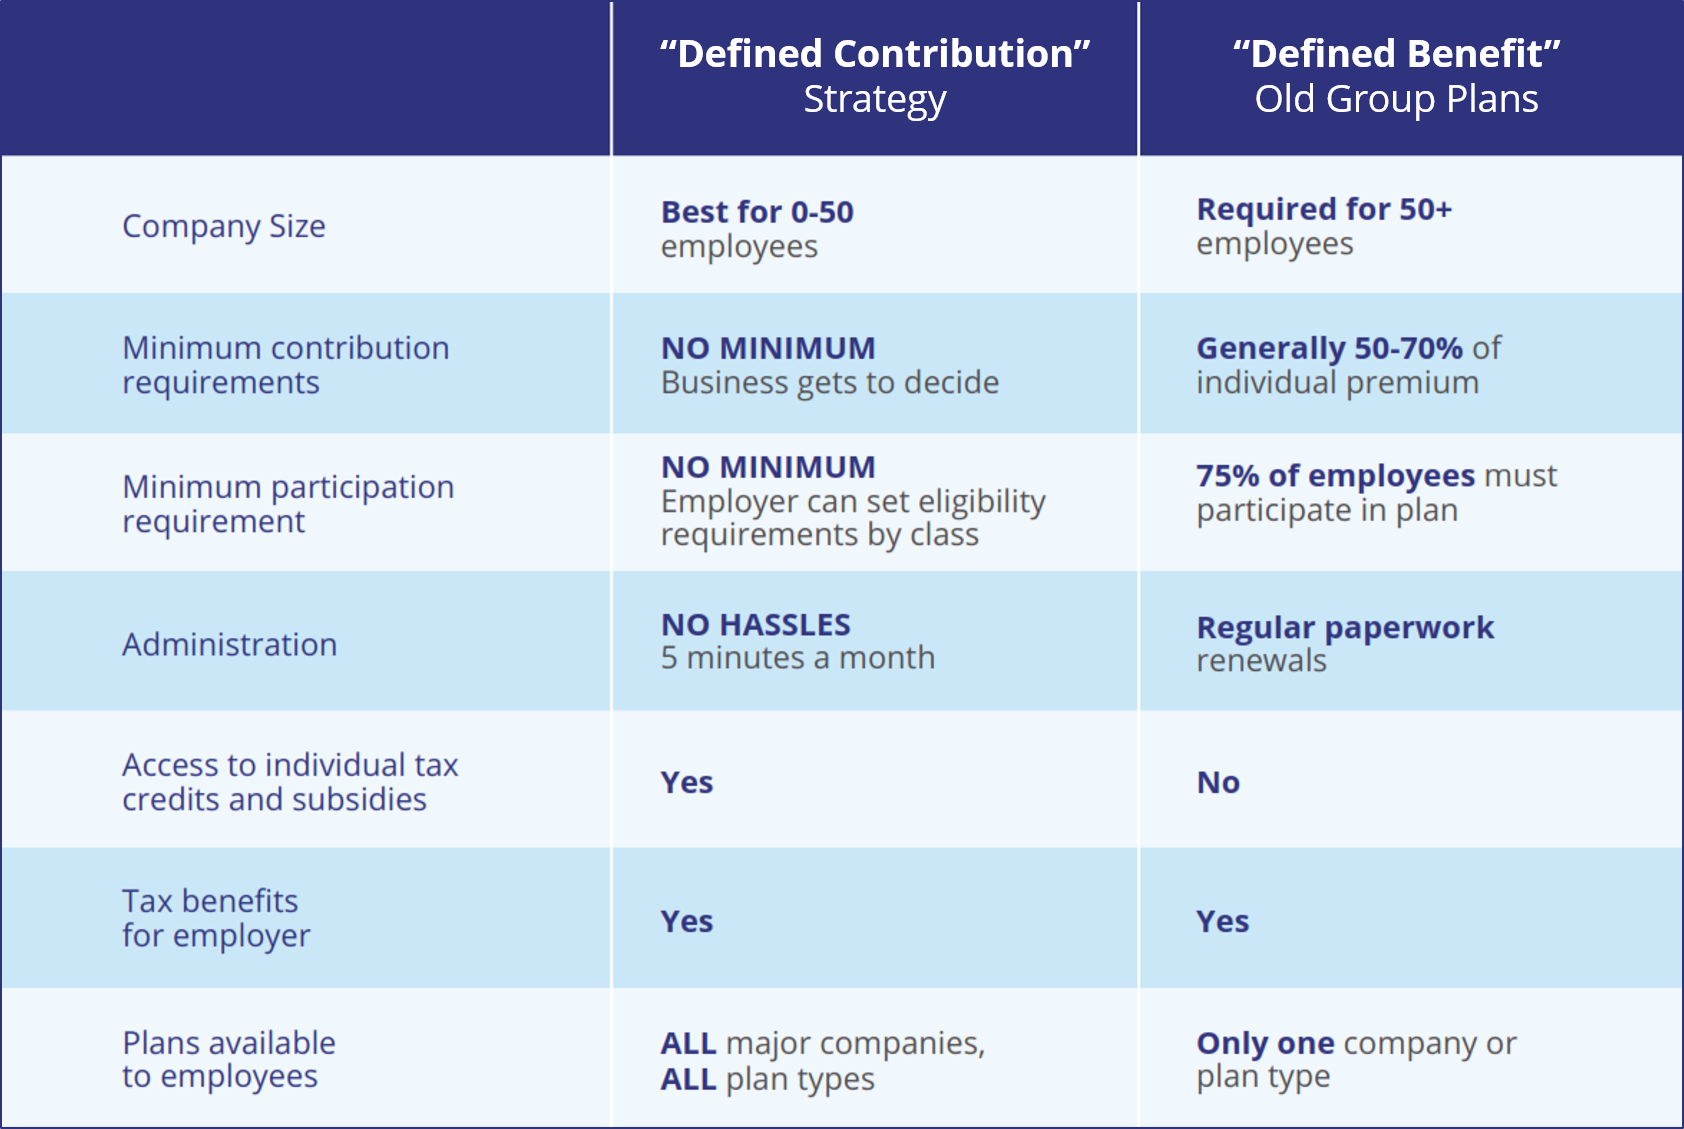 defined contribution defined benefits comparison chart.png